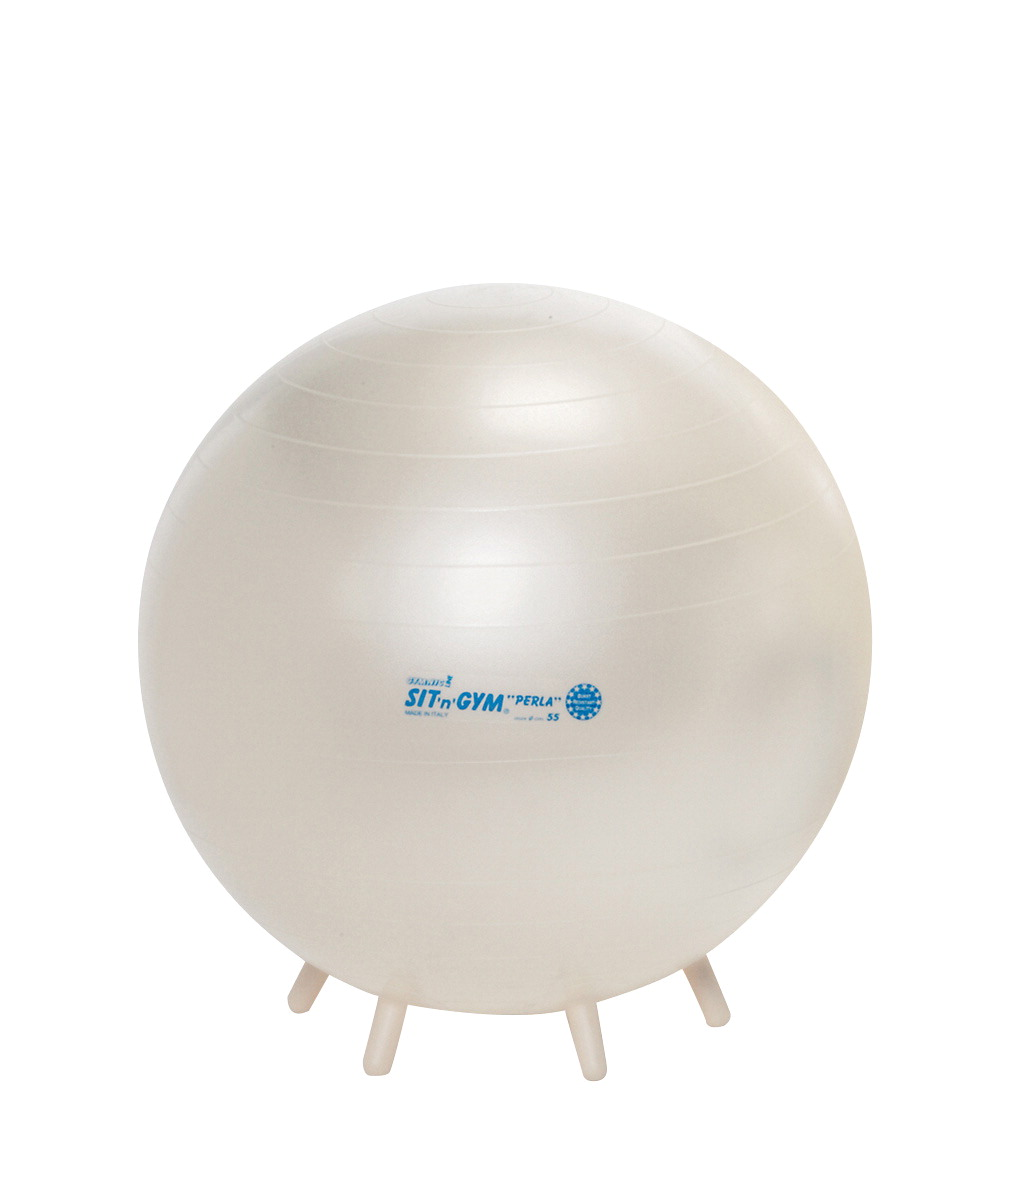 Gymnic Sit'N'Gym Therapy Ball with Built in Legs, 22 Inches, Pearl White